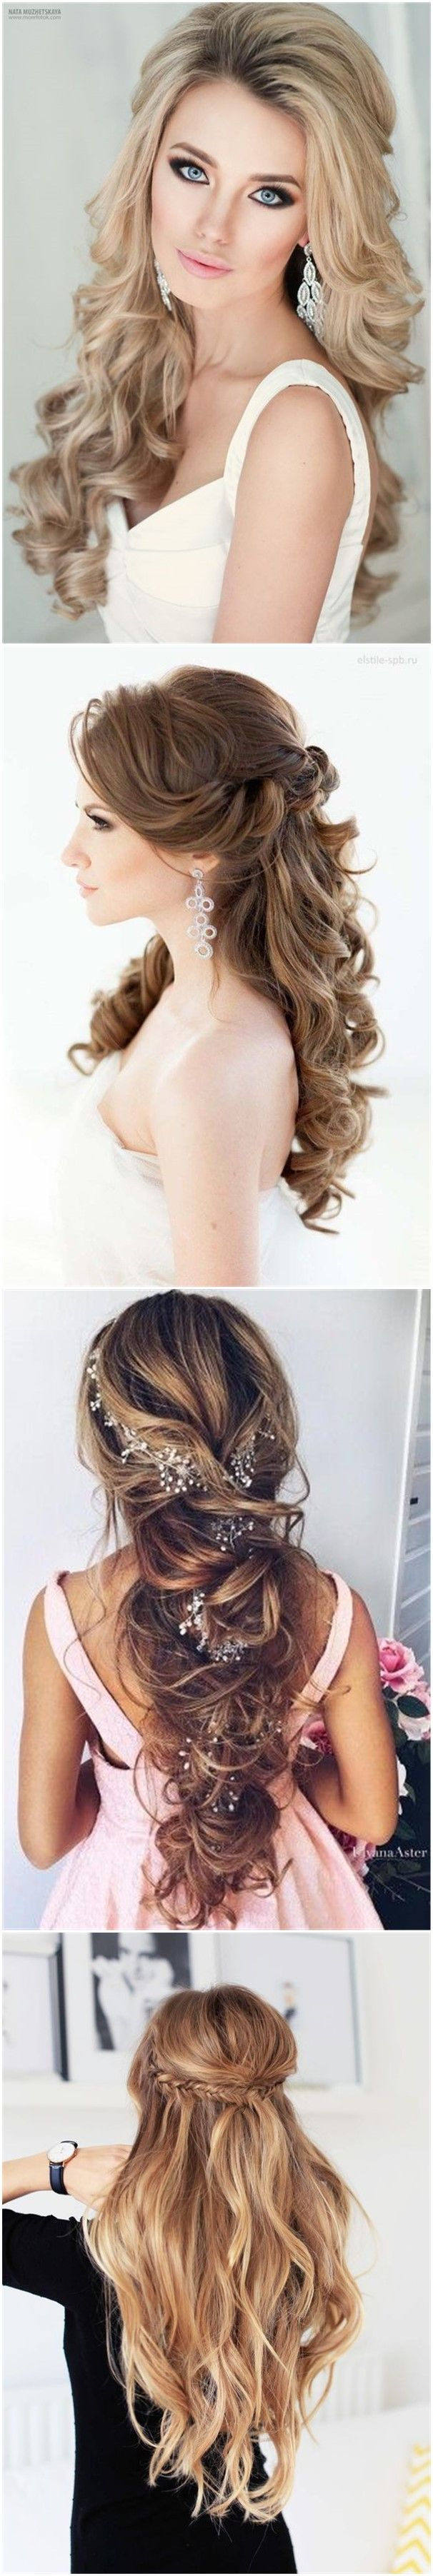 Beautiful Hairstyles for Long Hair for Wedding – Hairstyle Ideas